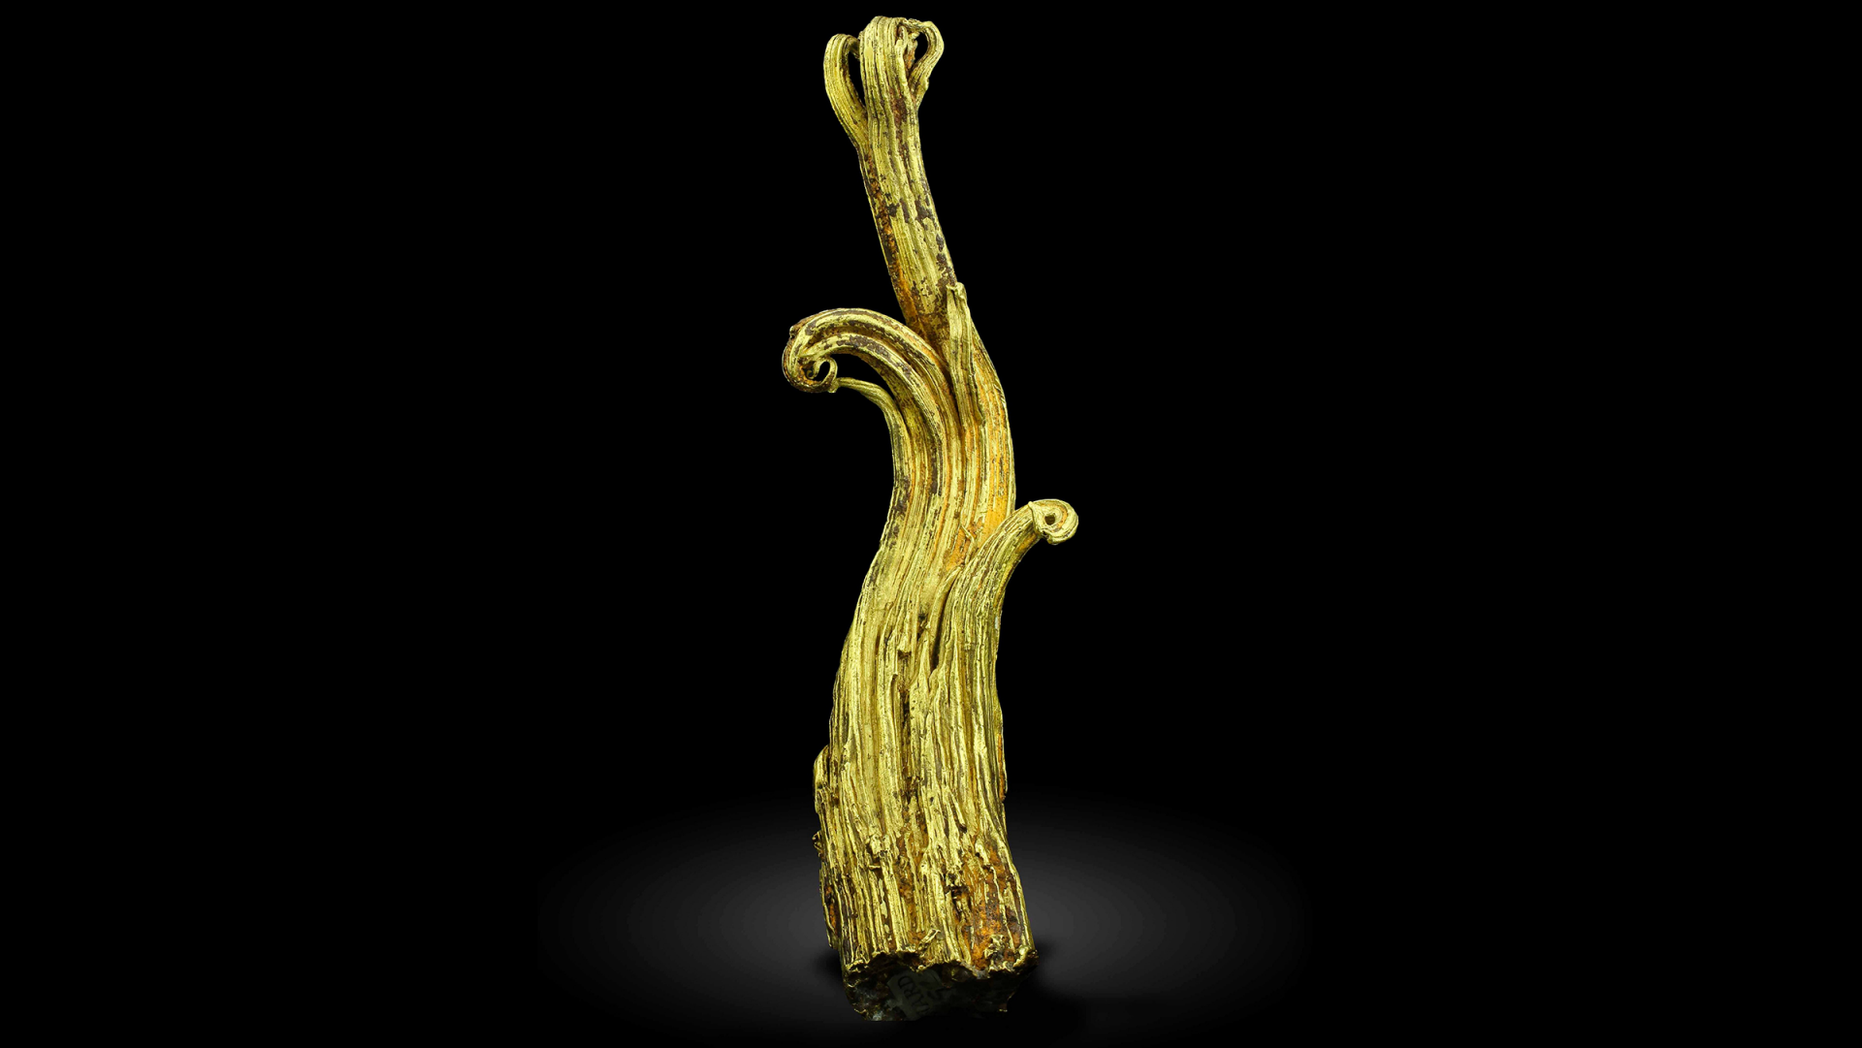 "This undated image provided by the Mineralogical and Geological Museum of Harvard University shows a rare gold specimen called the ""Ram's Horn."" A team of scientists used neutrons from a particle accelerator at Los Alamos National Laboratory in New Mexico to learn more about the specimen's structure and formation process. (Mineralogical and Geological Museum of Harvard University via AP)"